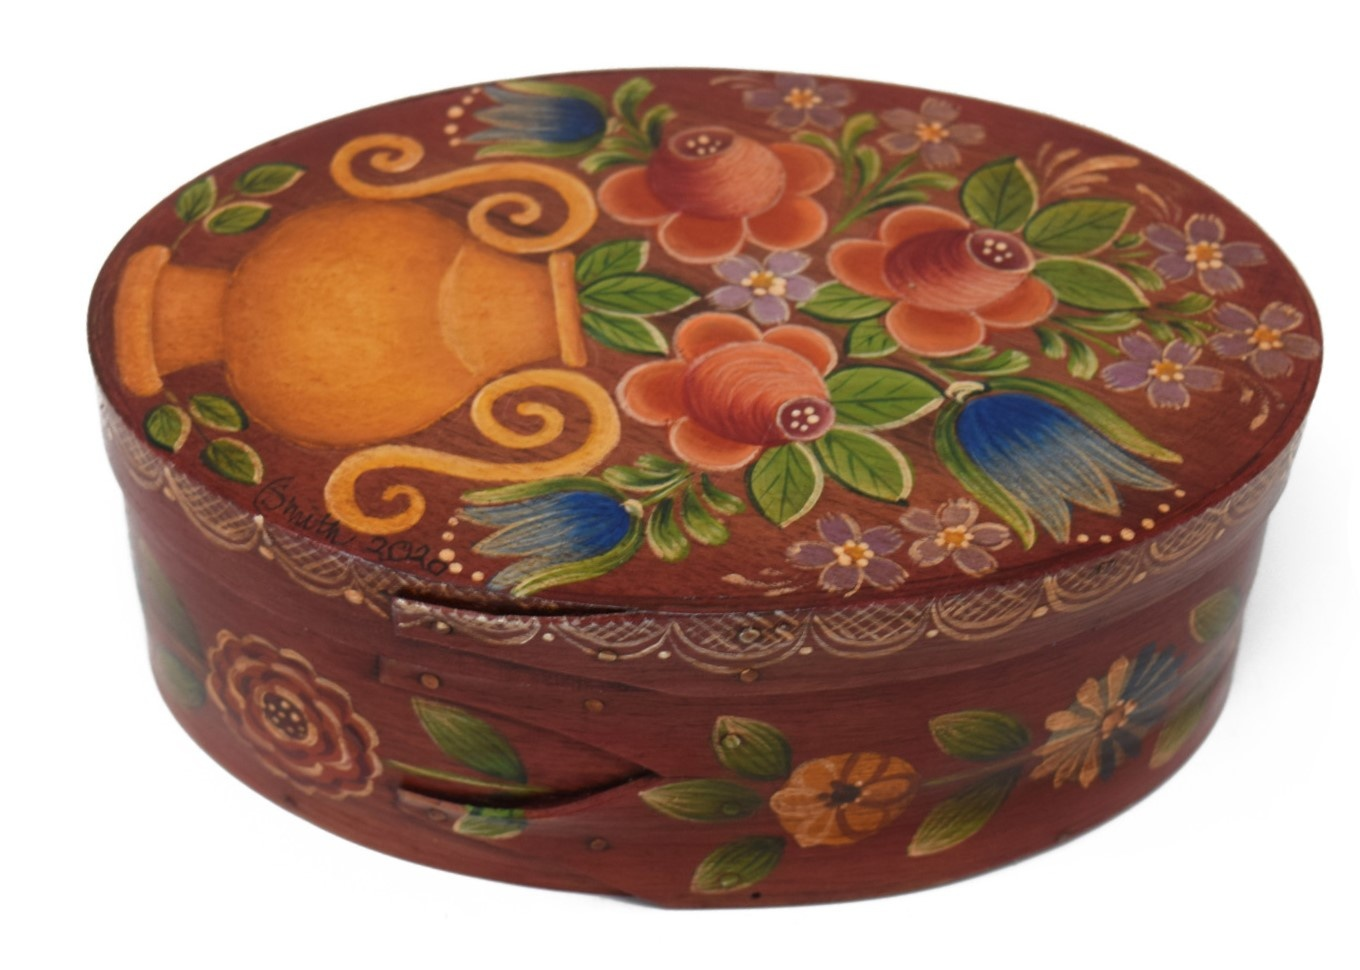 oval box brownish red with gold vase and flowers-2